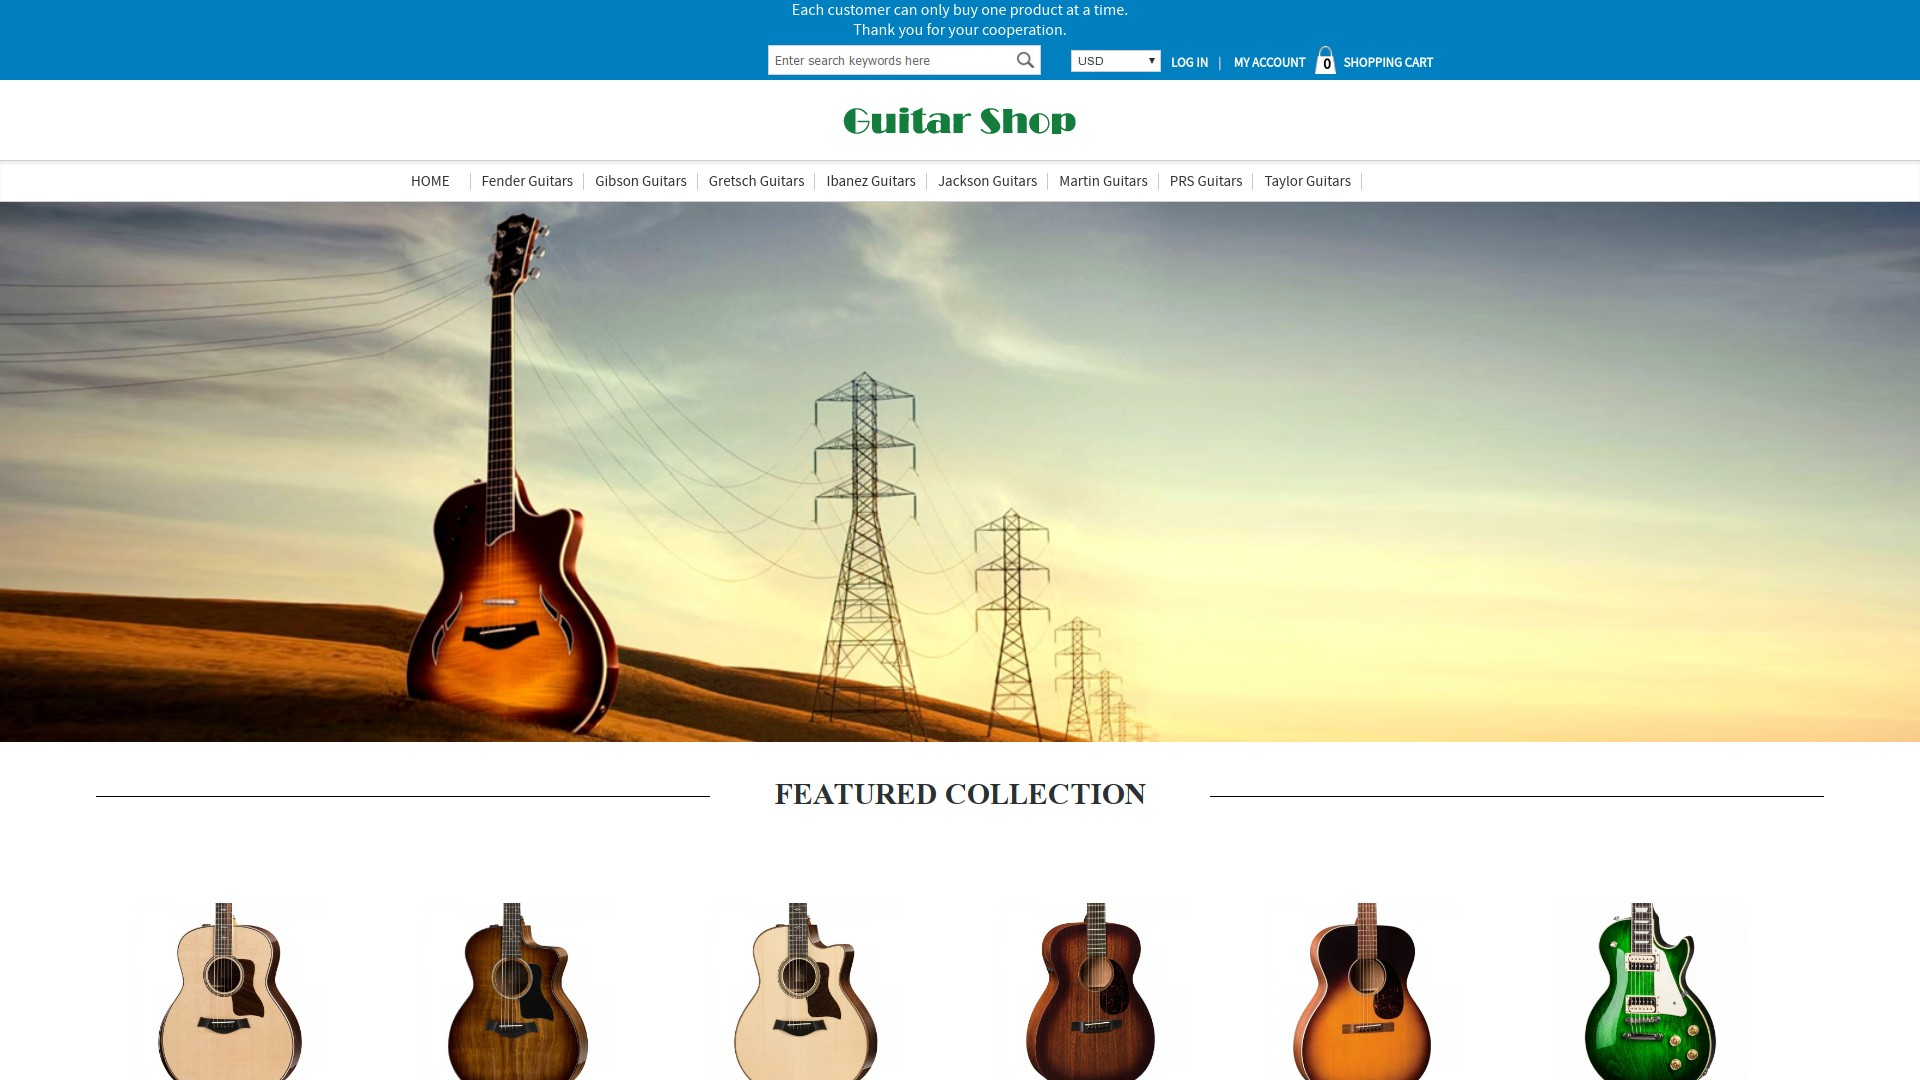 Is Fuligua.com a Scam? Review of the Guitar Store